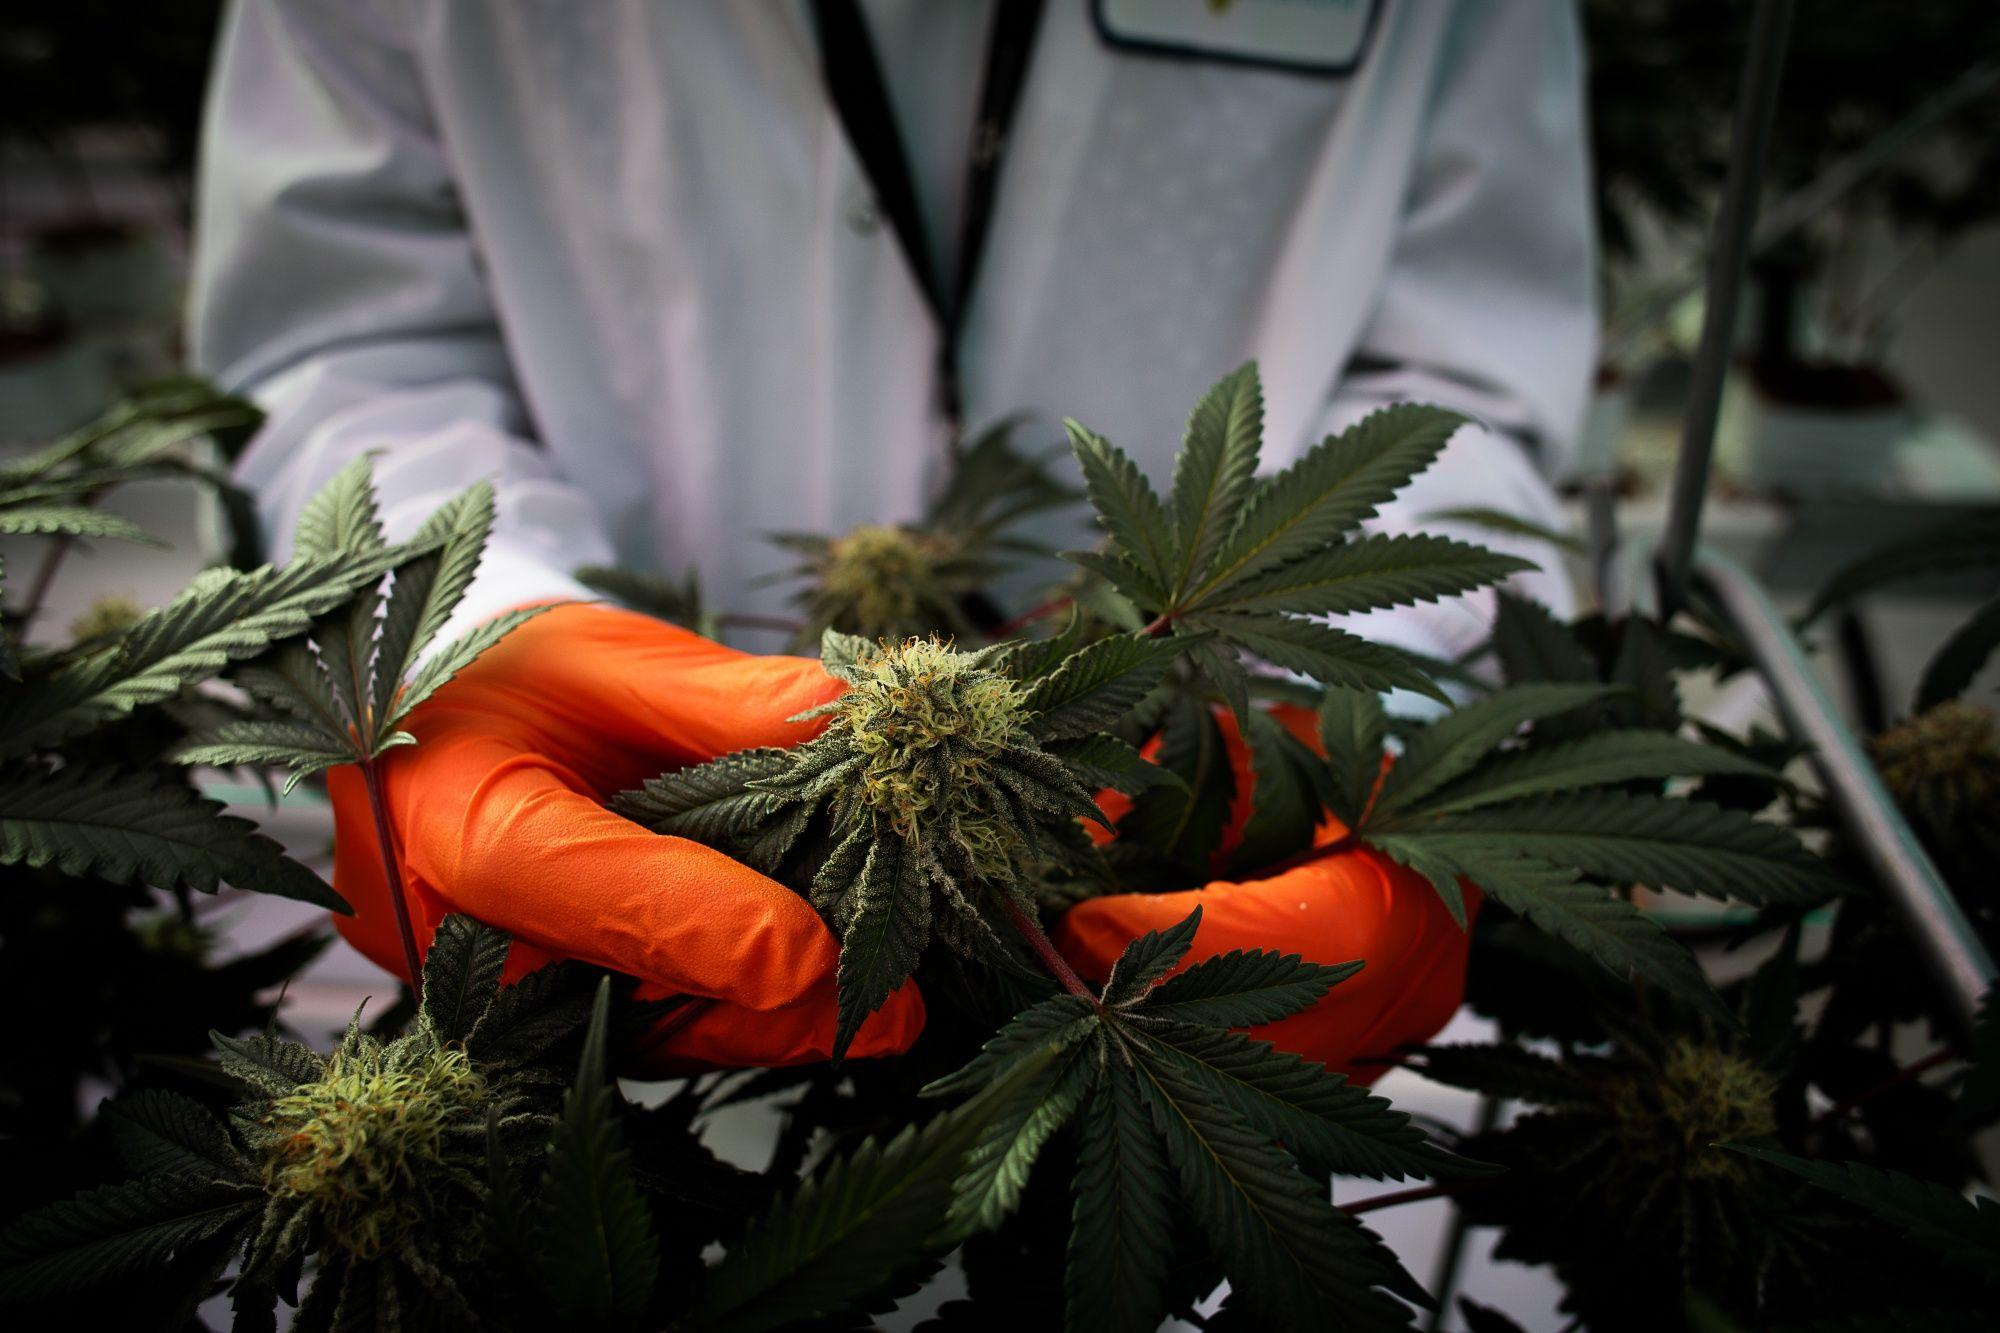 Tilray Surges as Cannabis Poised to Benefit After Lockdown